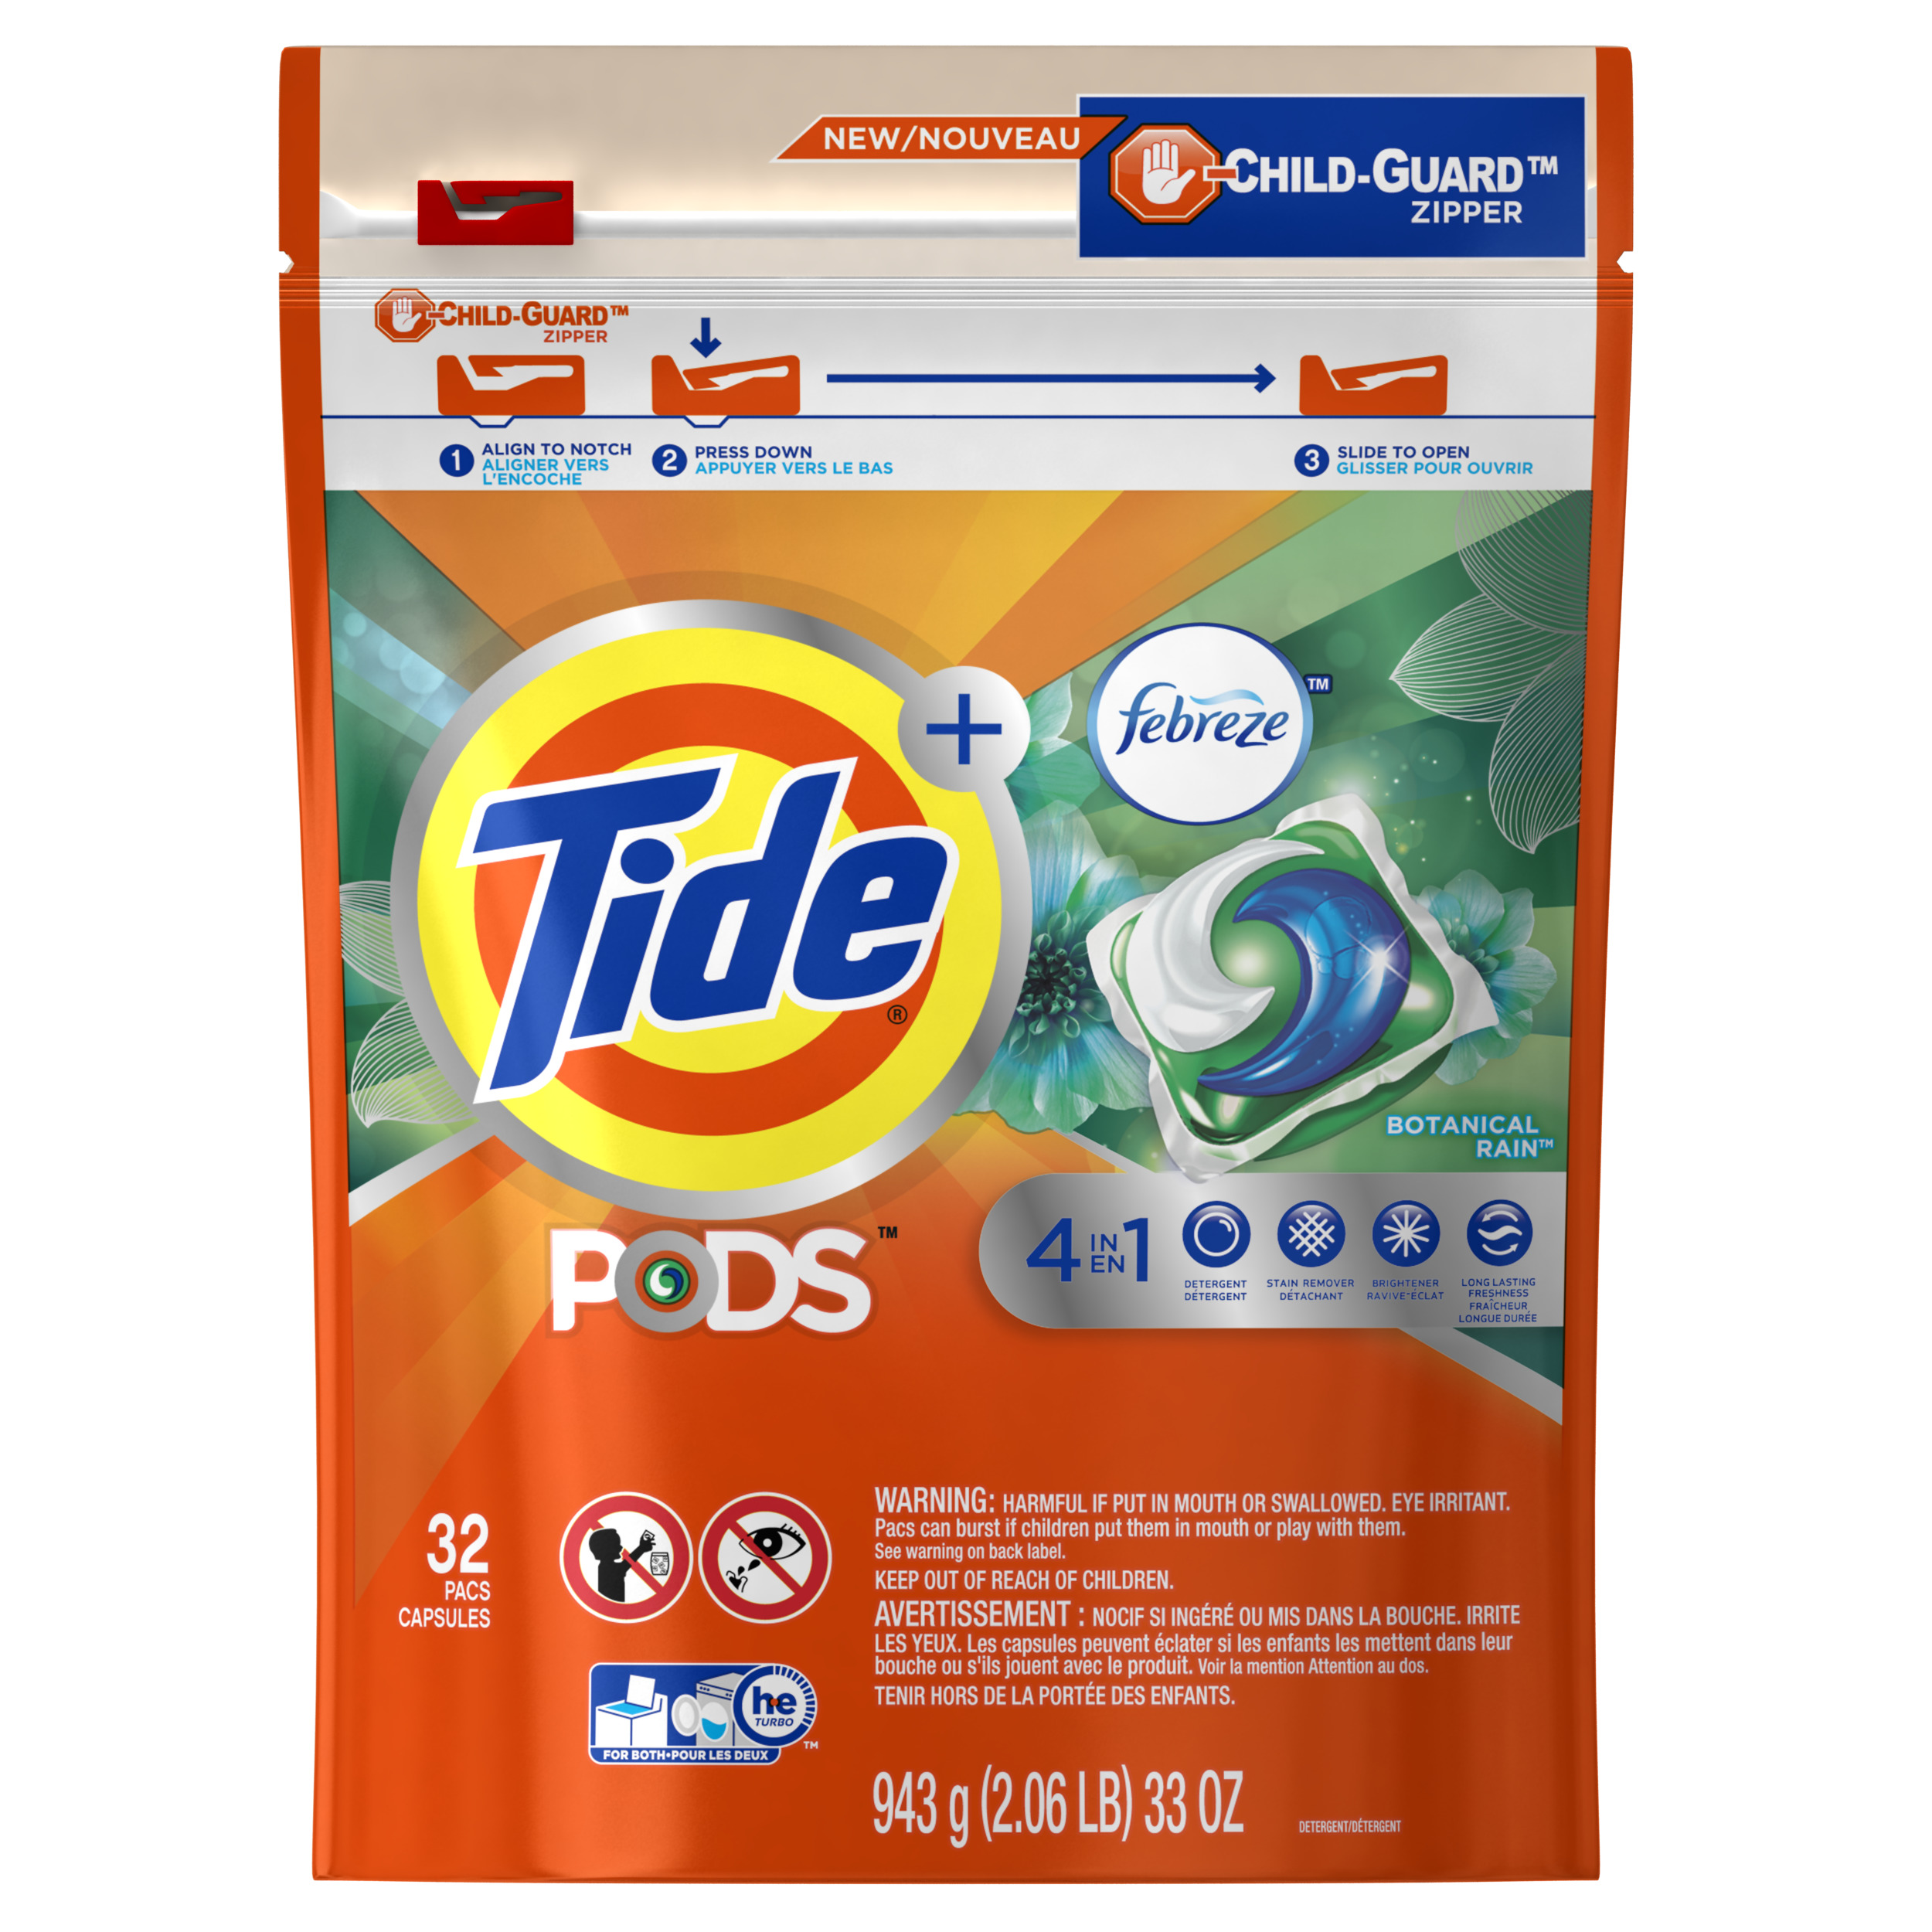 Tide PODS Laundry Detergent with Febreze, Botanical Rain, 32 count